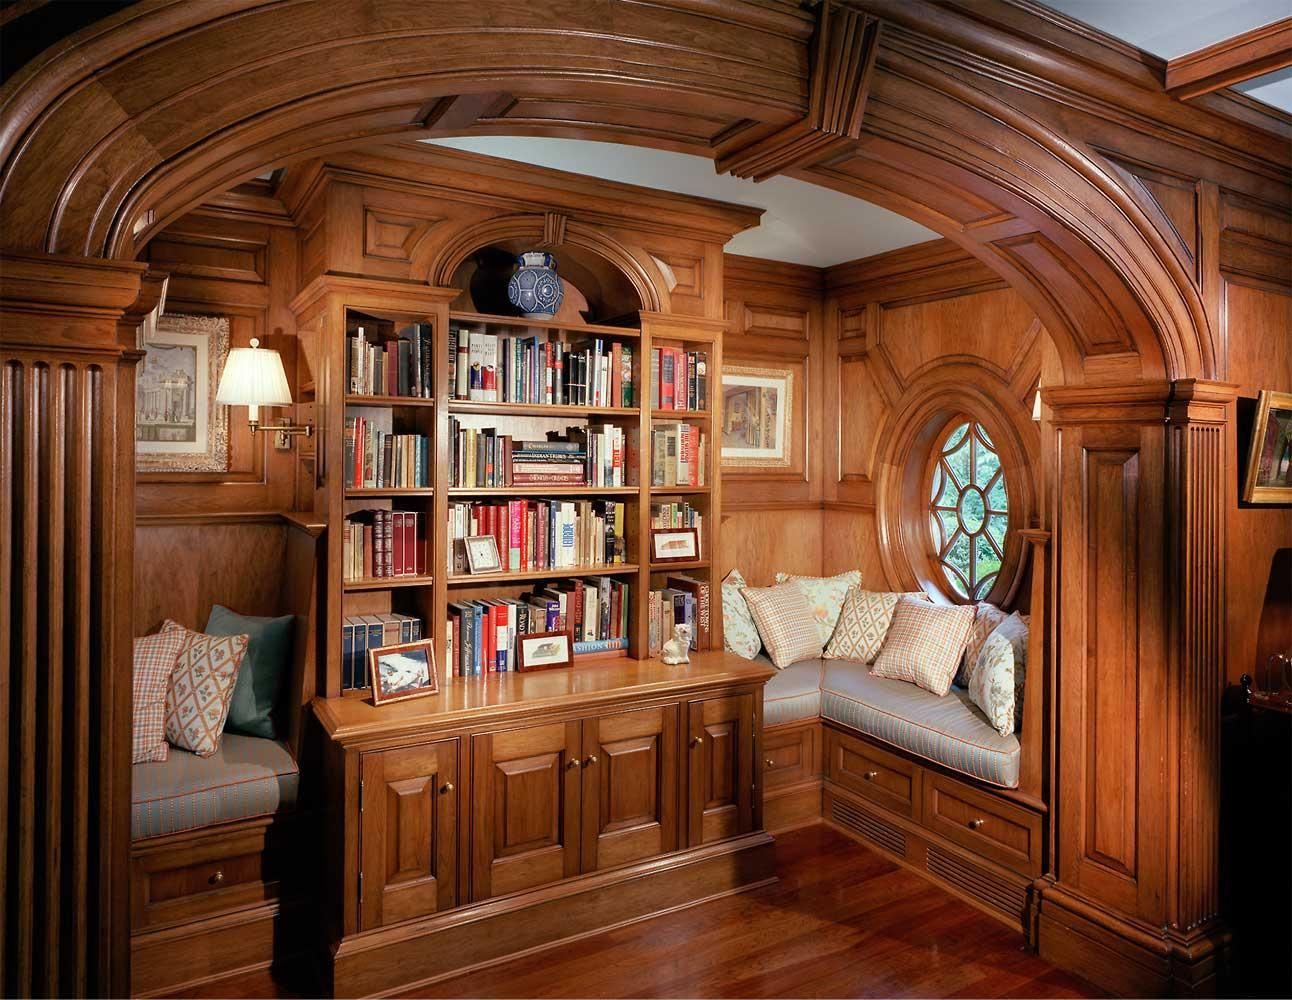 Cozy Window Seats Inside A Lovely Nook In Glossy Gorgeous And Classic Wood Paneled Library On Greenwich Connecticut By Hilton Vanderhorn Architects